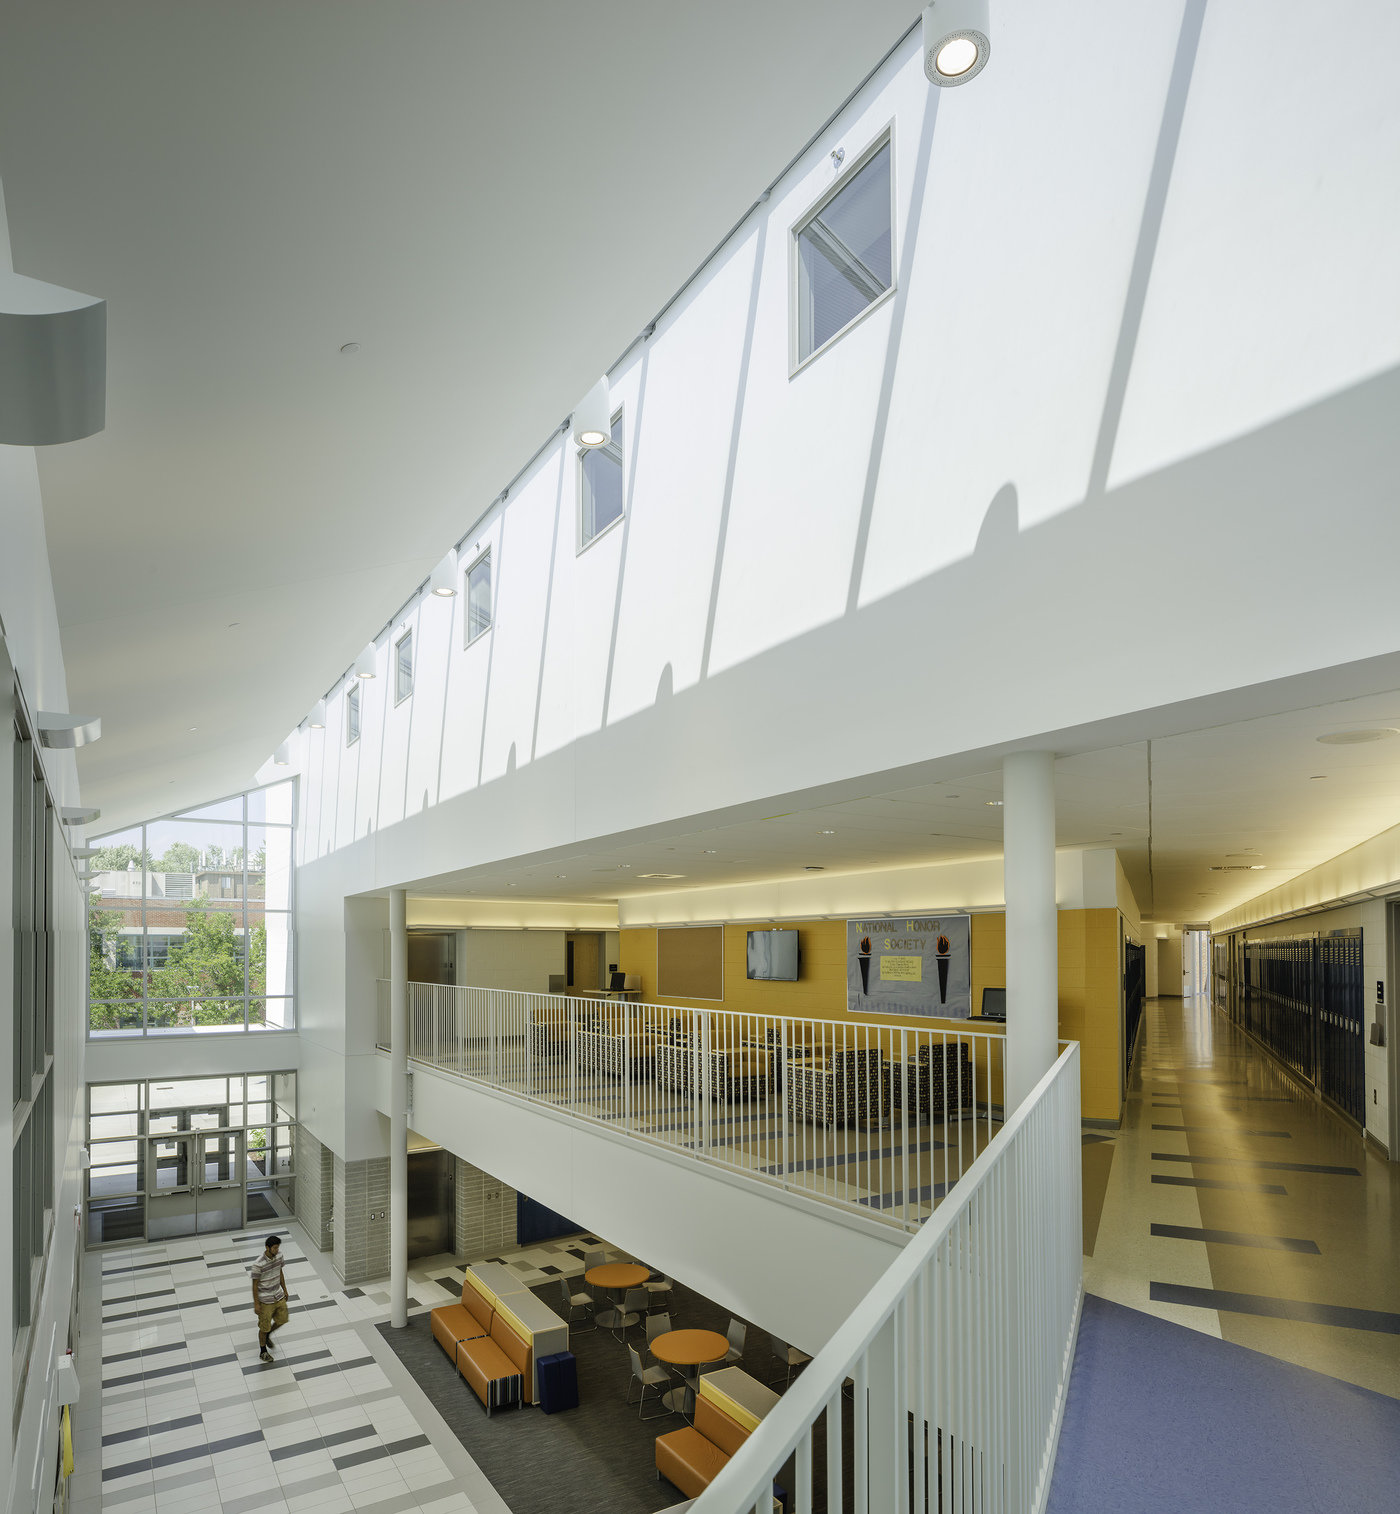 6 tskp hartford magnet trinity college academy interior view entrance halls upper level skylights1 1400 xxx q85